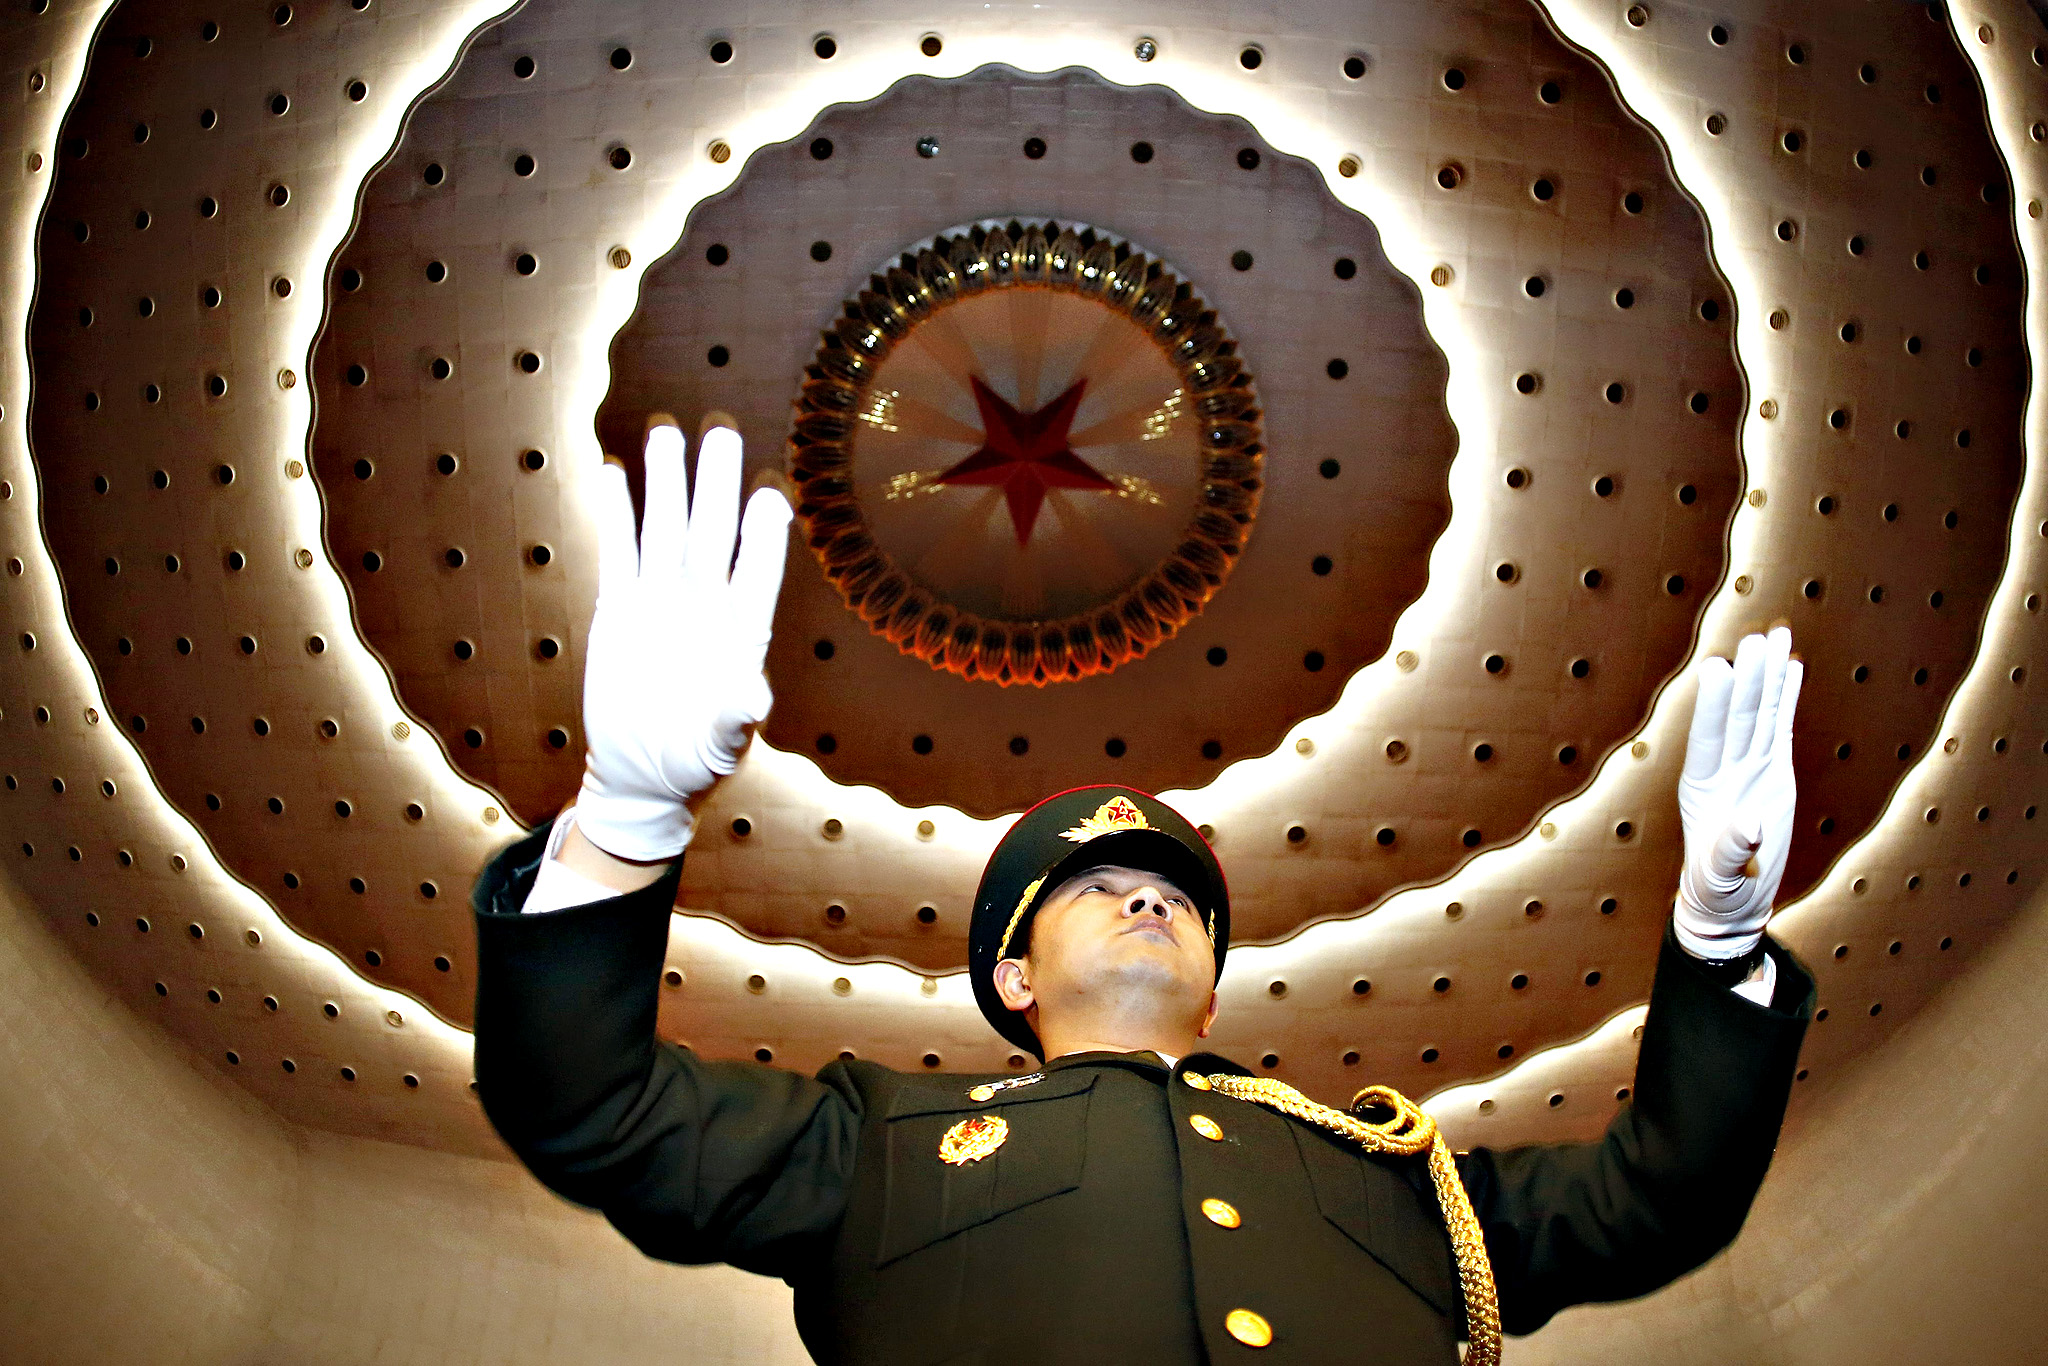 A military band conductor practices during rehearsal ahead the opening session of the third plenum of the 12th National People's Congress (NPC) at the Great Hall of the People in Beijing, China, 05 March 2015. The NPC has over 3,000 delegates and is the world's largest parliament or legislative assembly though its function is largely as a formal seal of approval for the policies fixed by the leaders of the Chinese Communist Party.